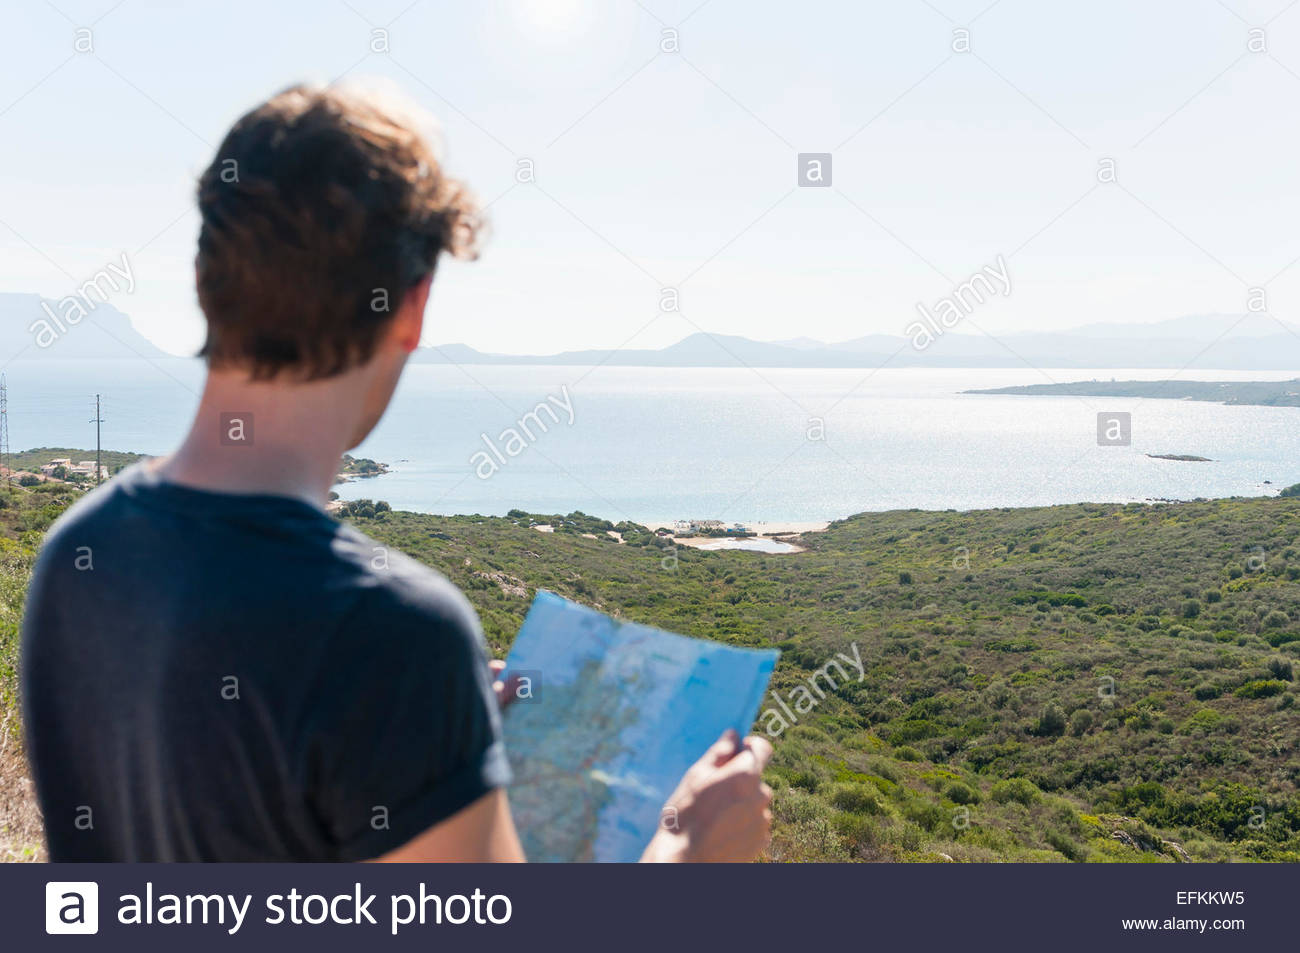 Rear view of mid adult man holding map and looking at coastal view, Sardinia, Italy - Stock Image